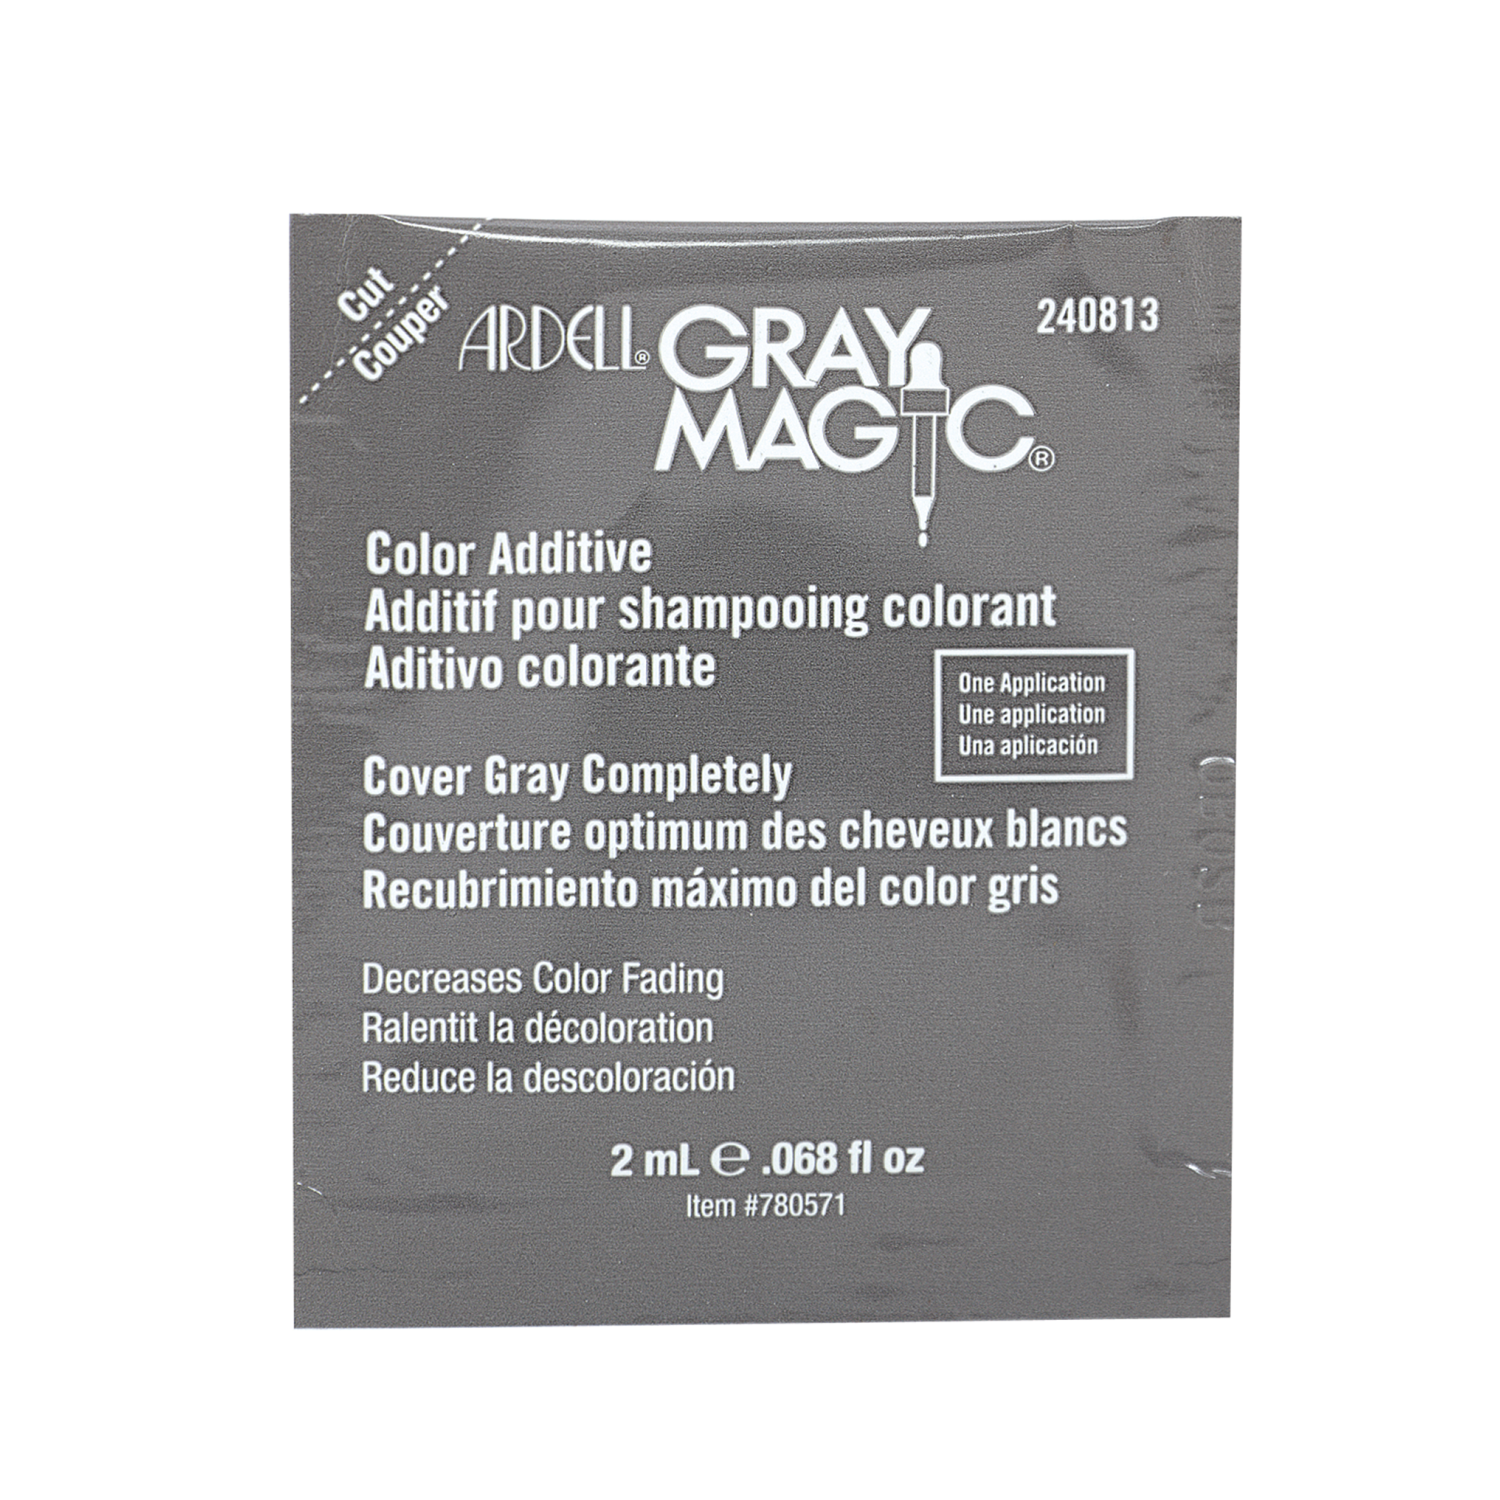 Gray Magic Color Additive Hair Styles Products I Love Now And